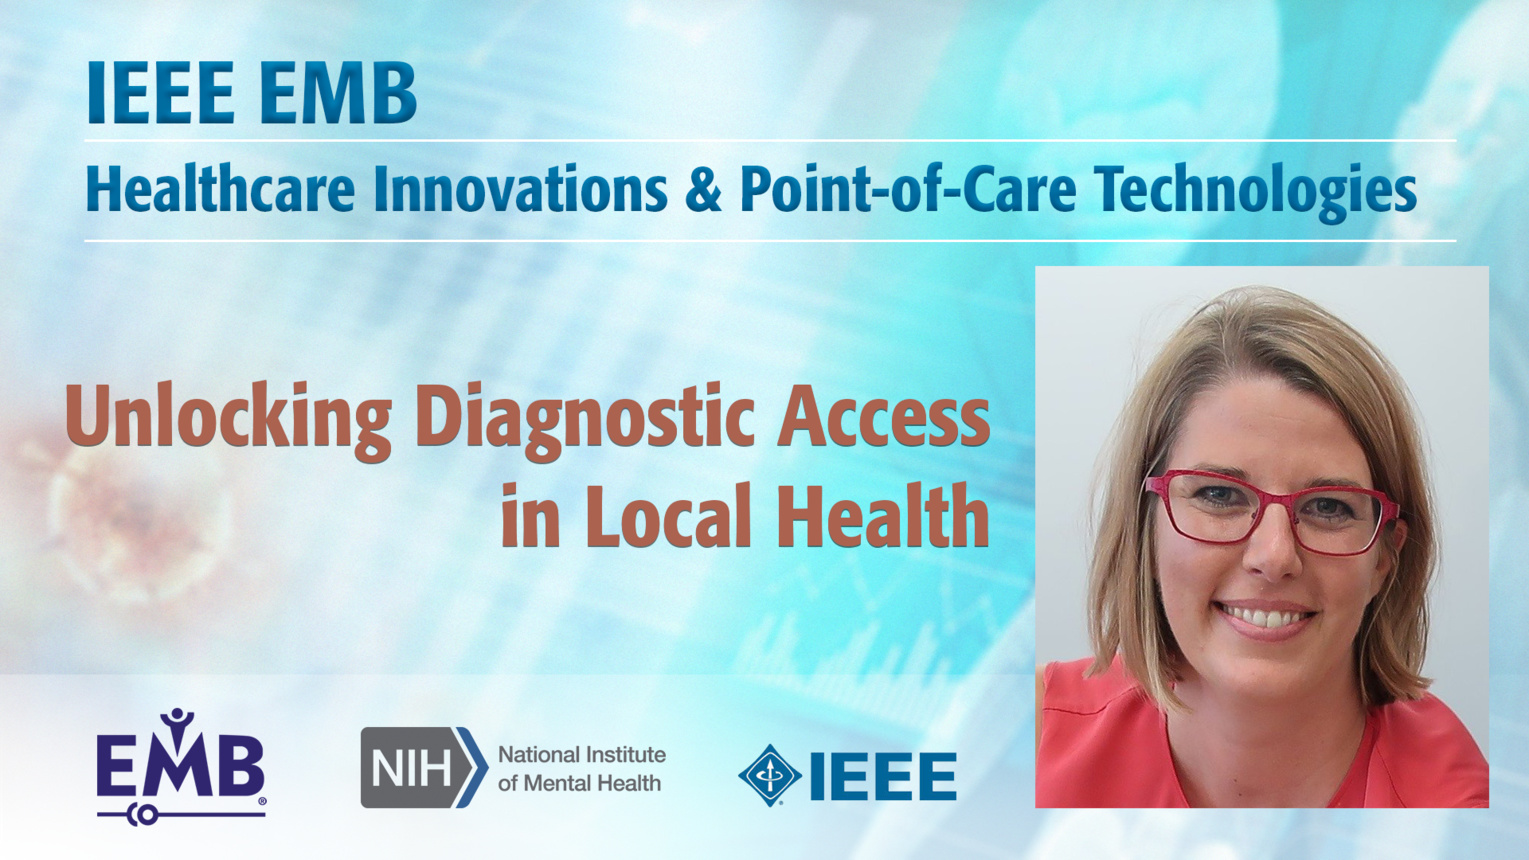 Unlocking Diagnostic Access in Local Health - Catharina Boehme - IEEE EMBS at NIH, 2019